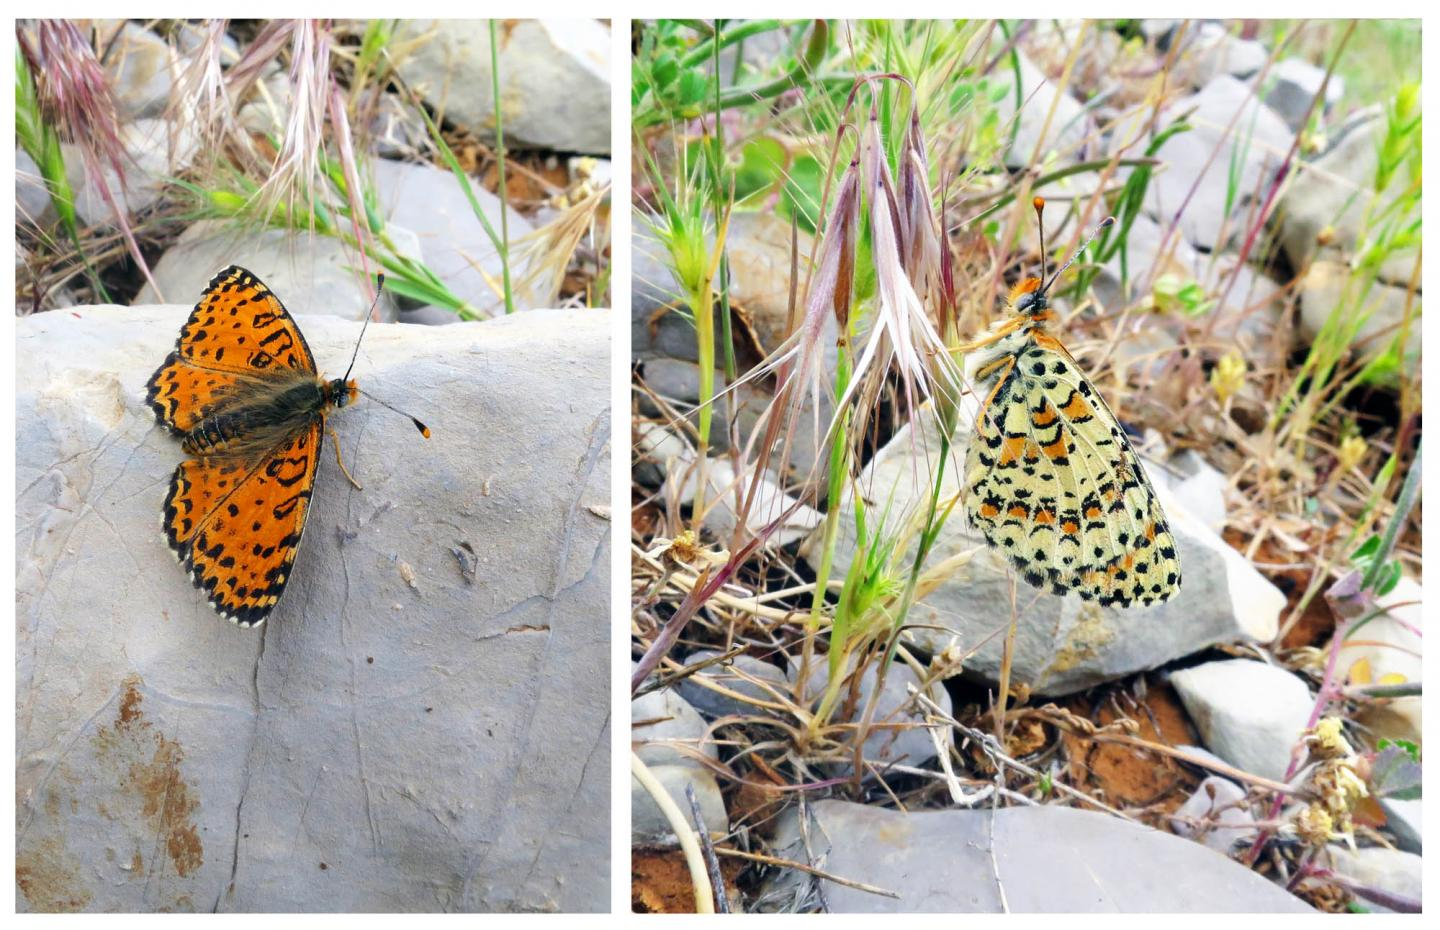 Acentria's fritillary (Melitaea acentria), a new butterfly species discovered in Israel on the slopes of the popular Mount Hermon ski resort. Photocredit: Dr Vladimir Lukhtanov